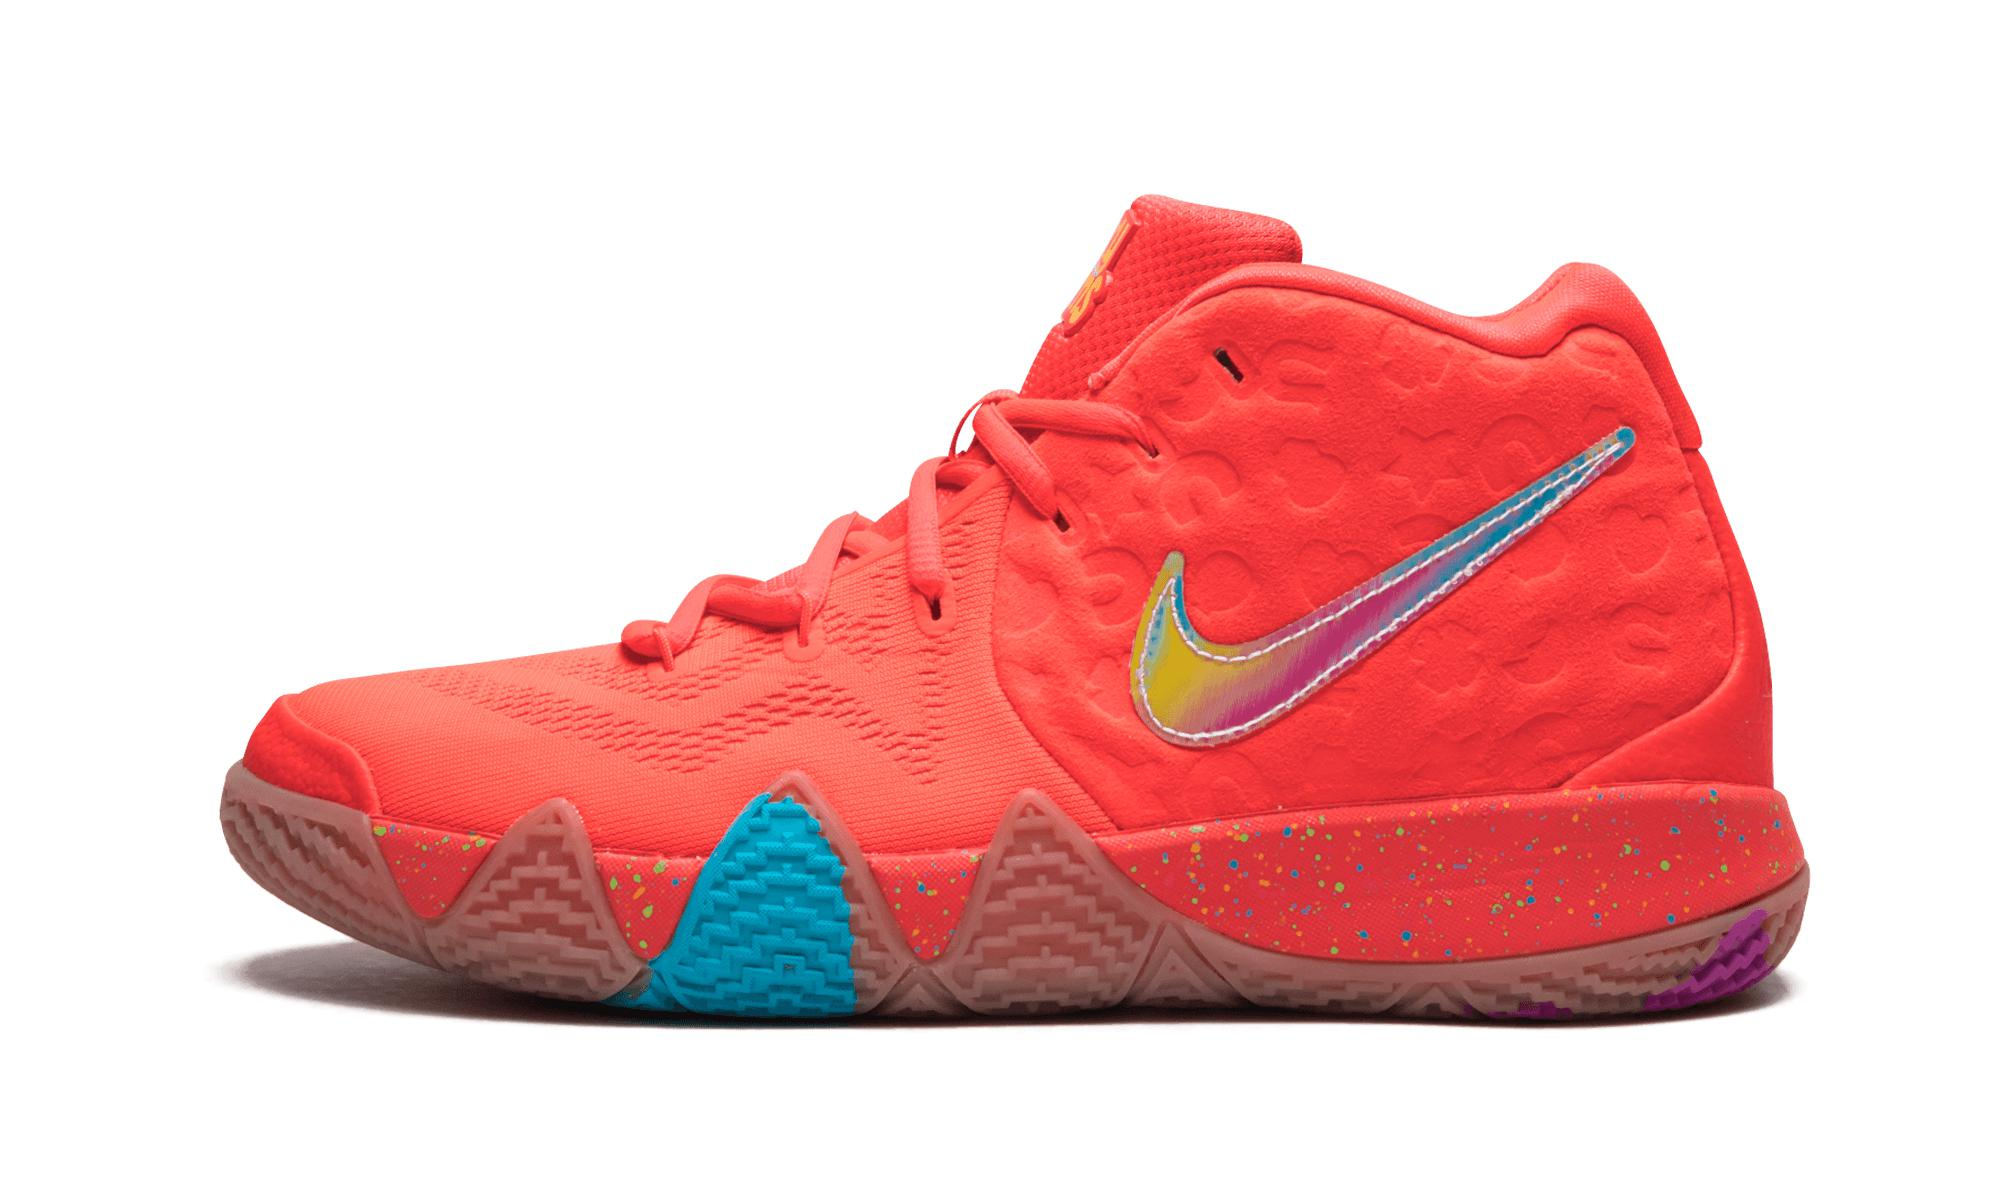 6874326d29d Nike Kyrie 4 Lucky Charms (gs) in Red for Men - Save 75% - Lyst